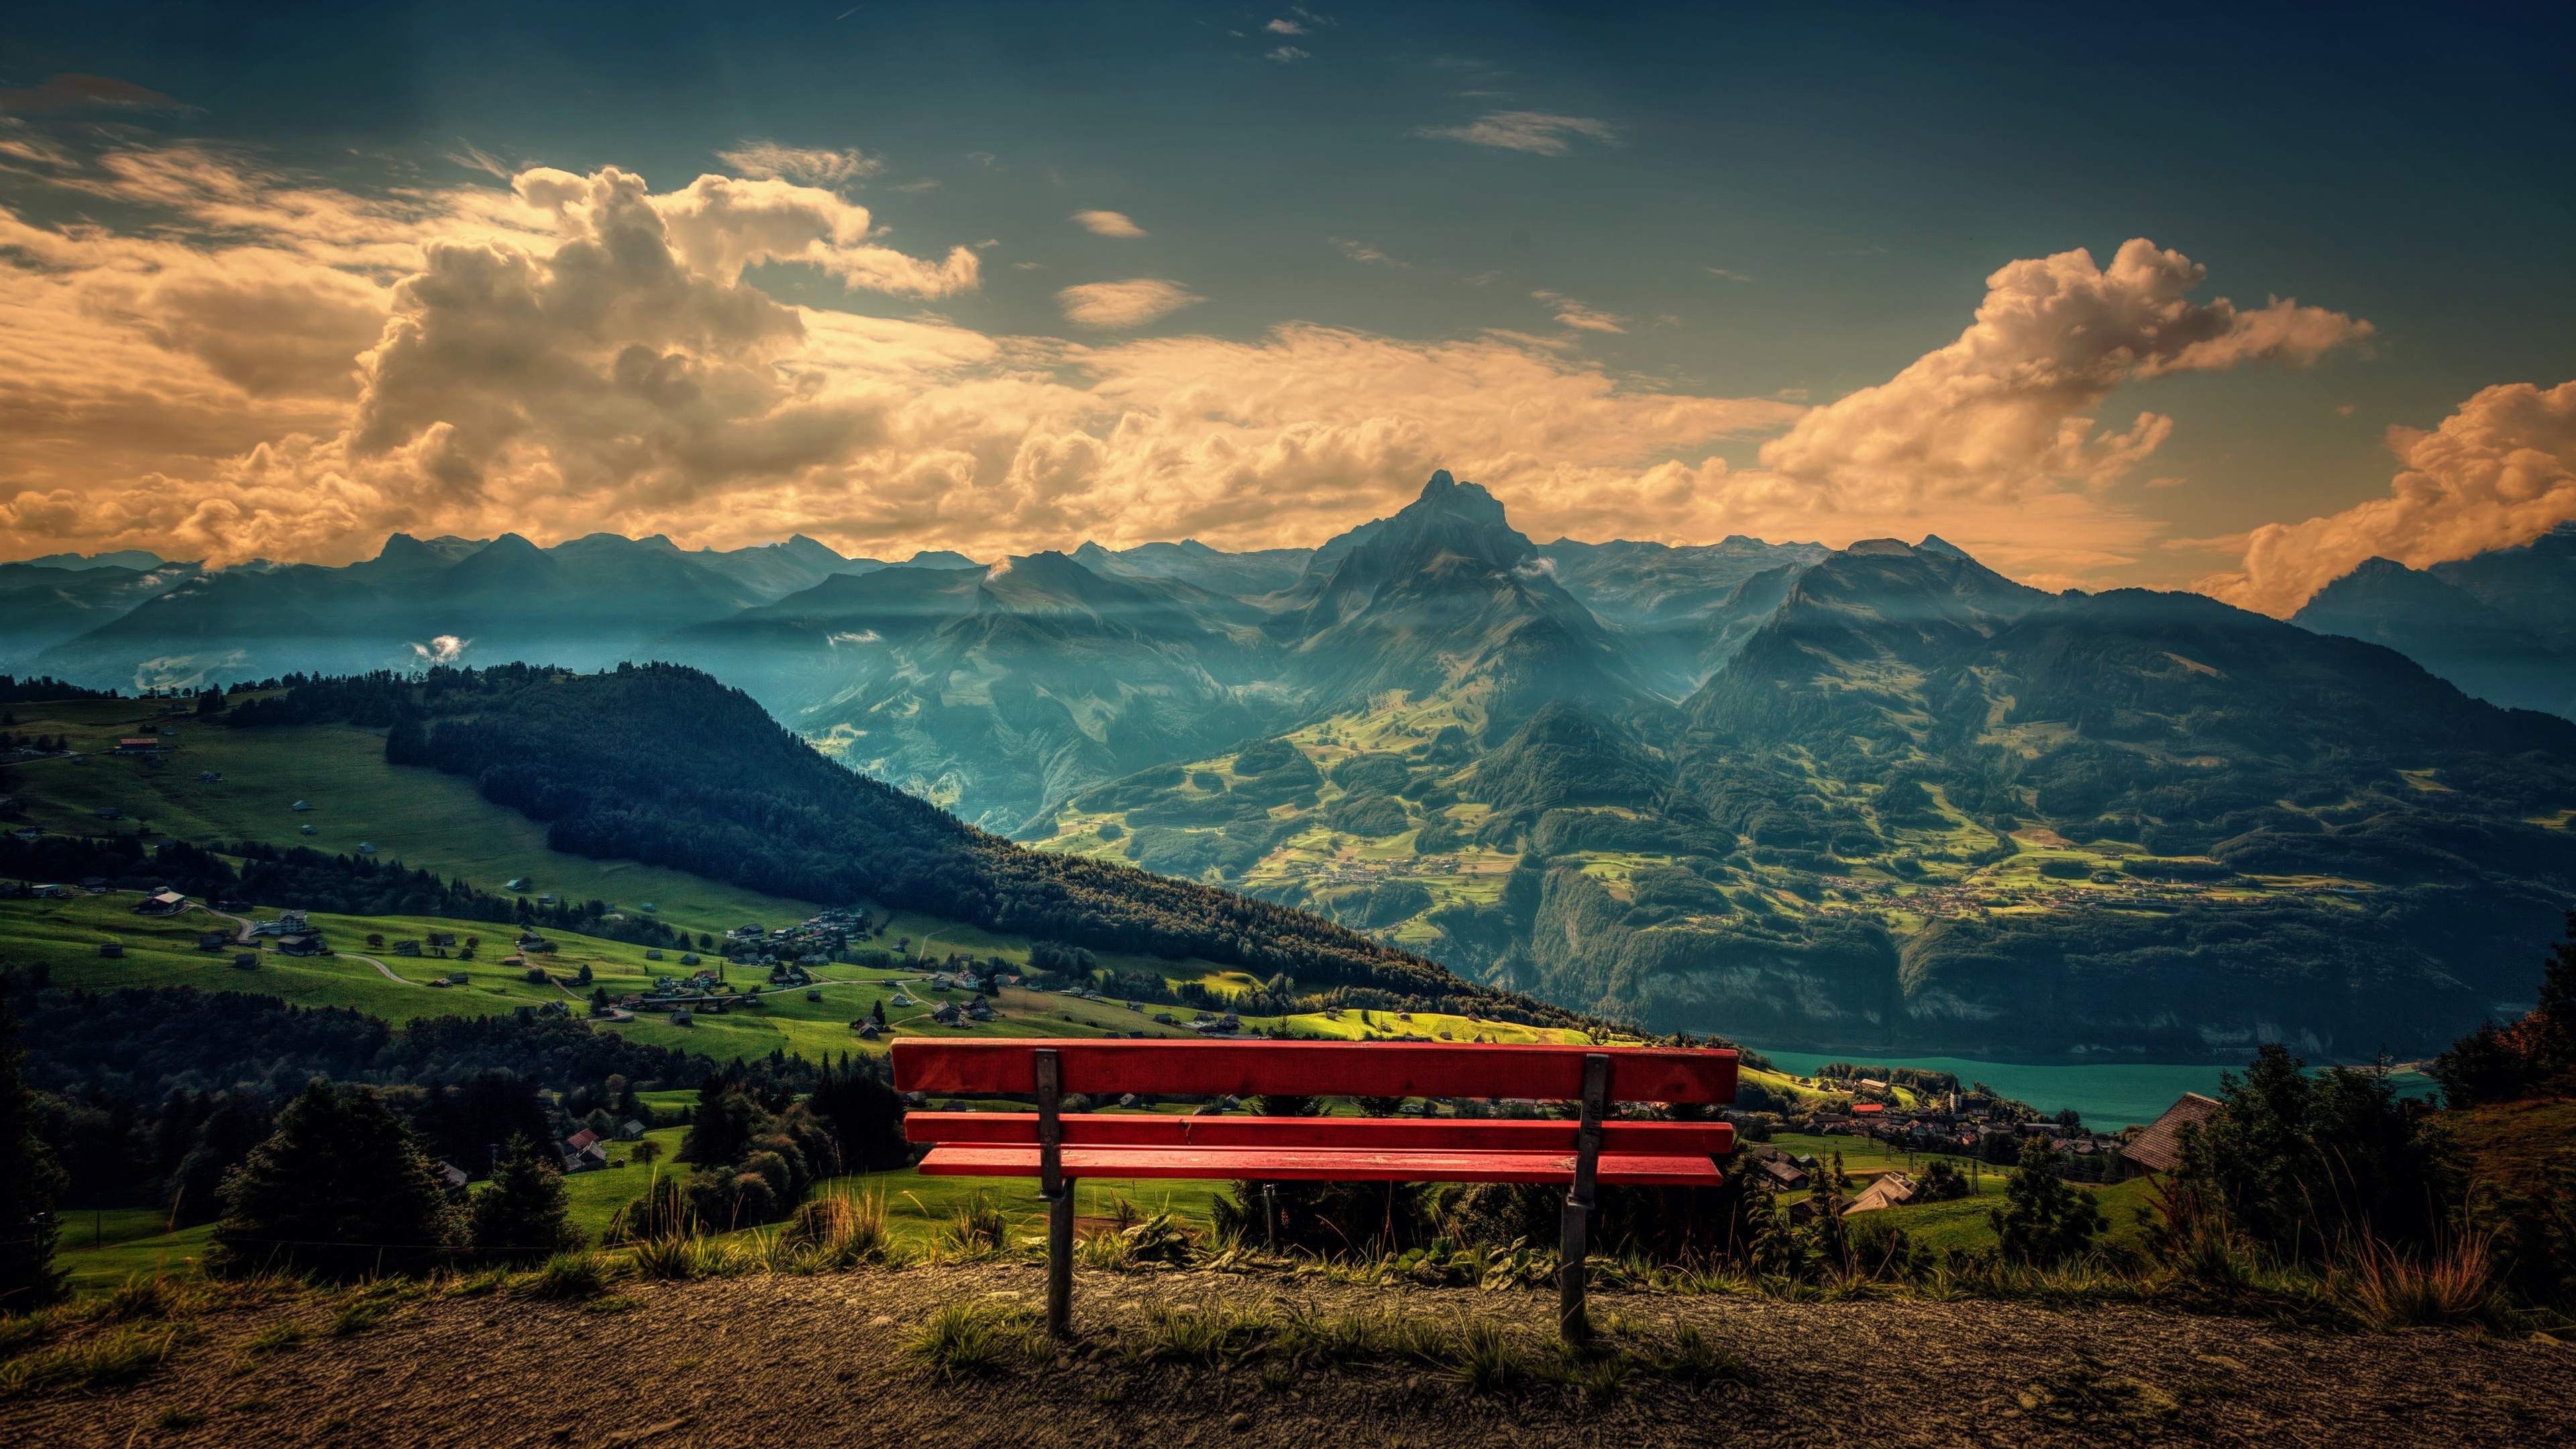 4k Desktop Backgrounds Nature Posted By John Anderson